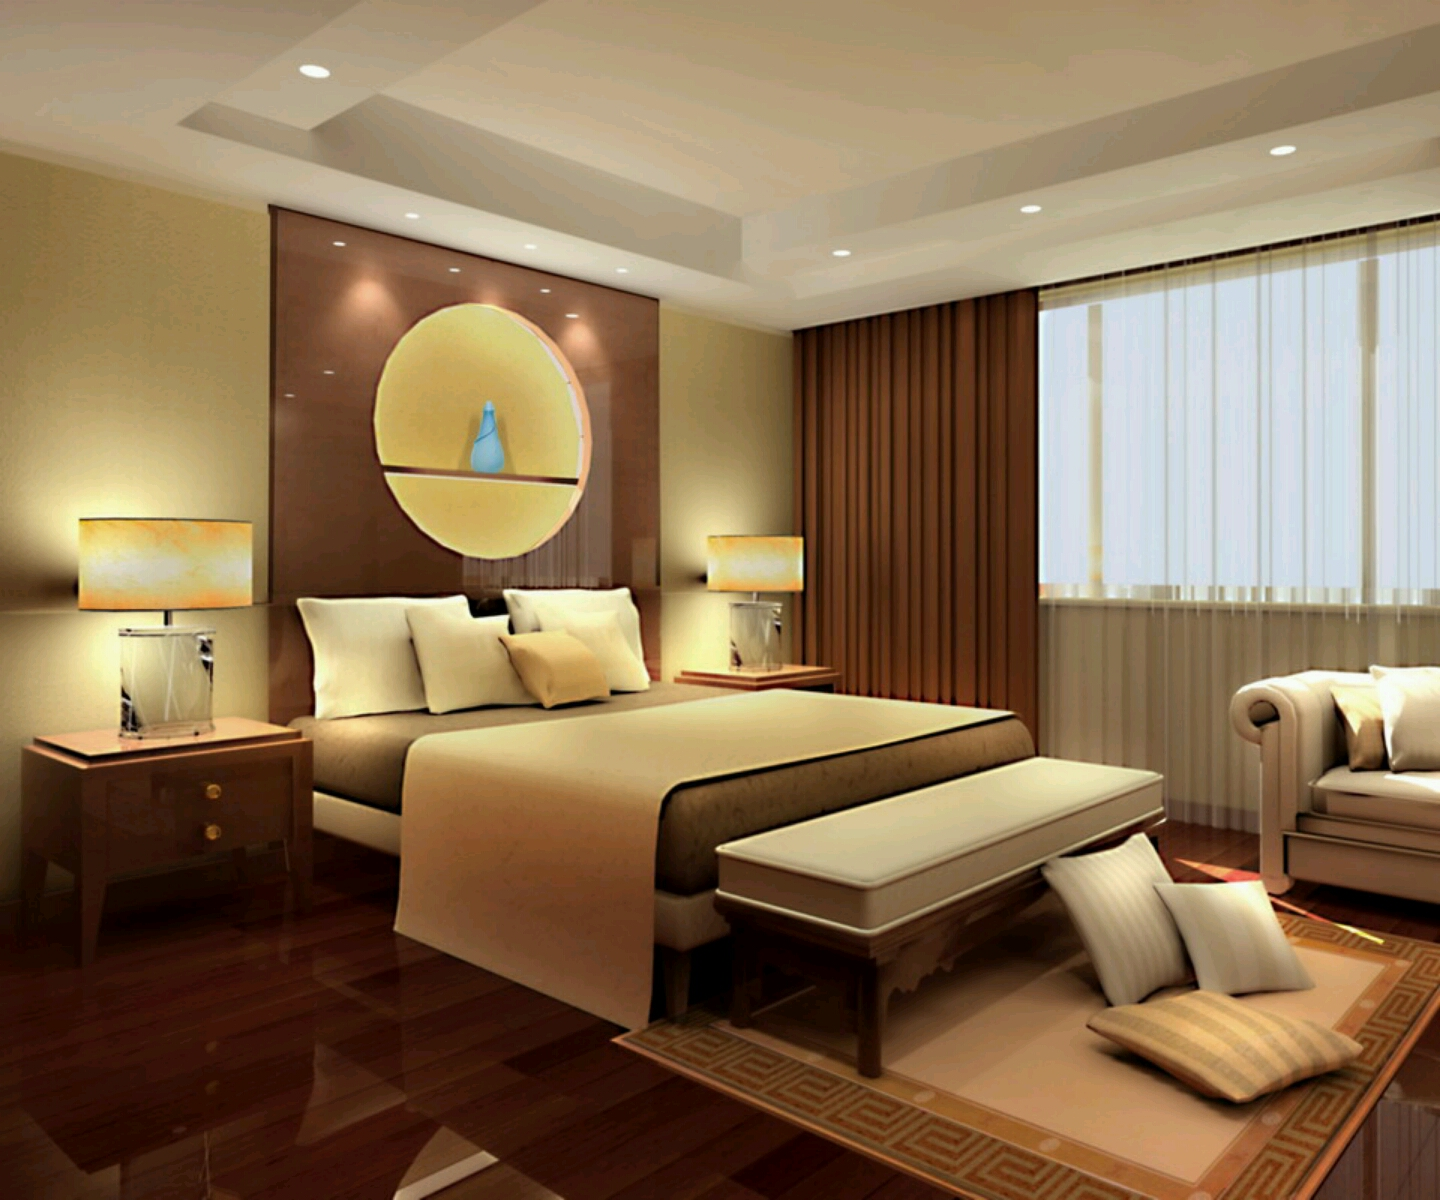 New home designs latest modern beautiful bedrooms for Interior designs bedroom